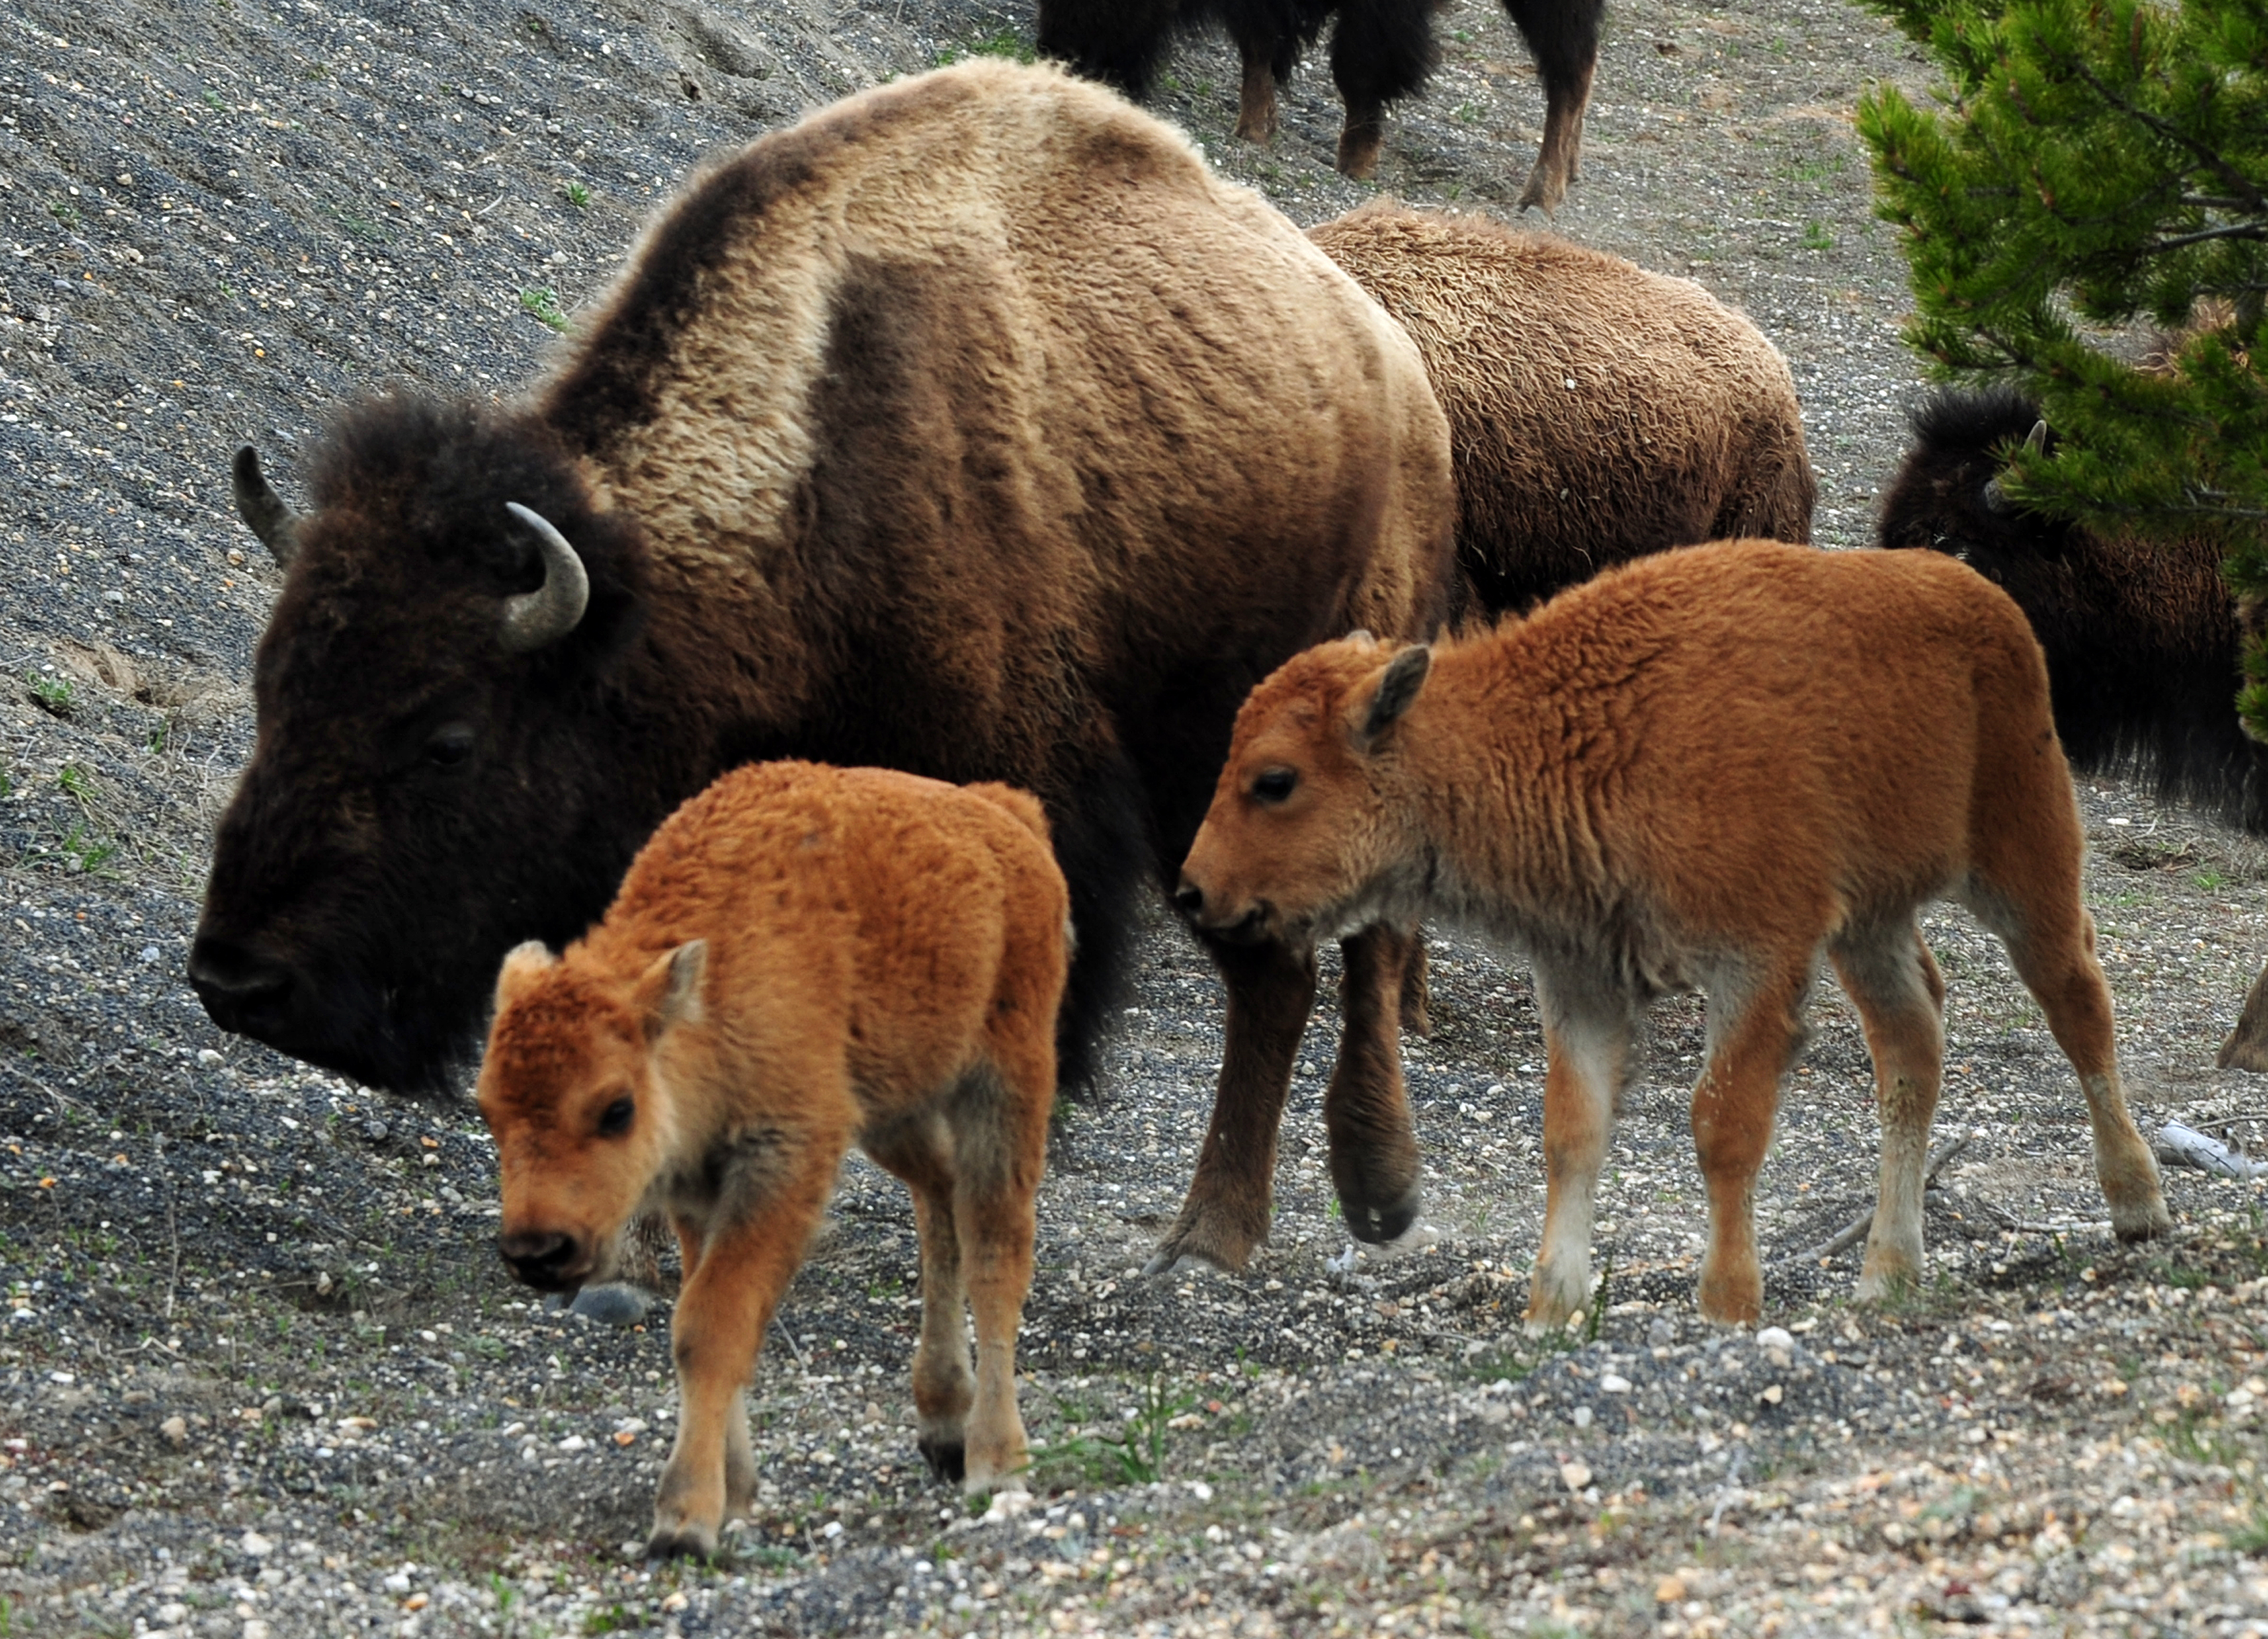 Wyoming tribe marks return of buffalo after a century - CBS News